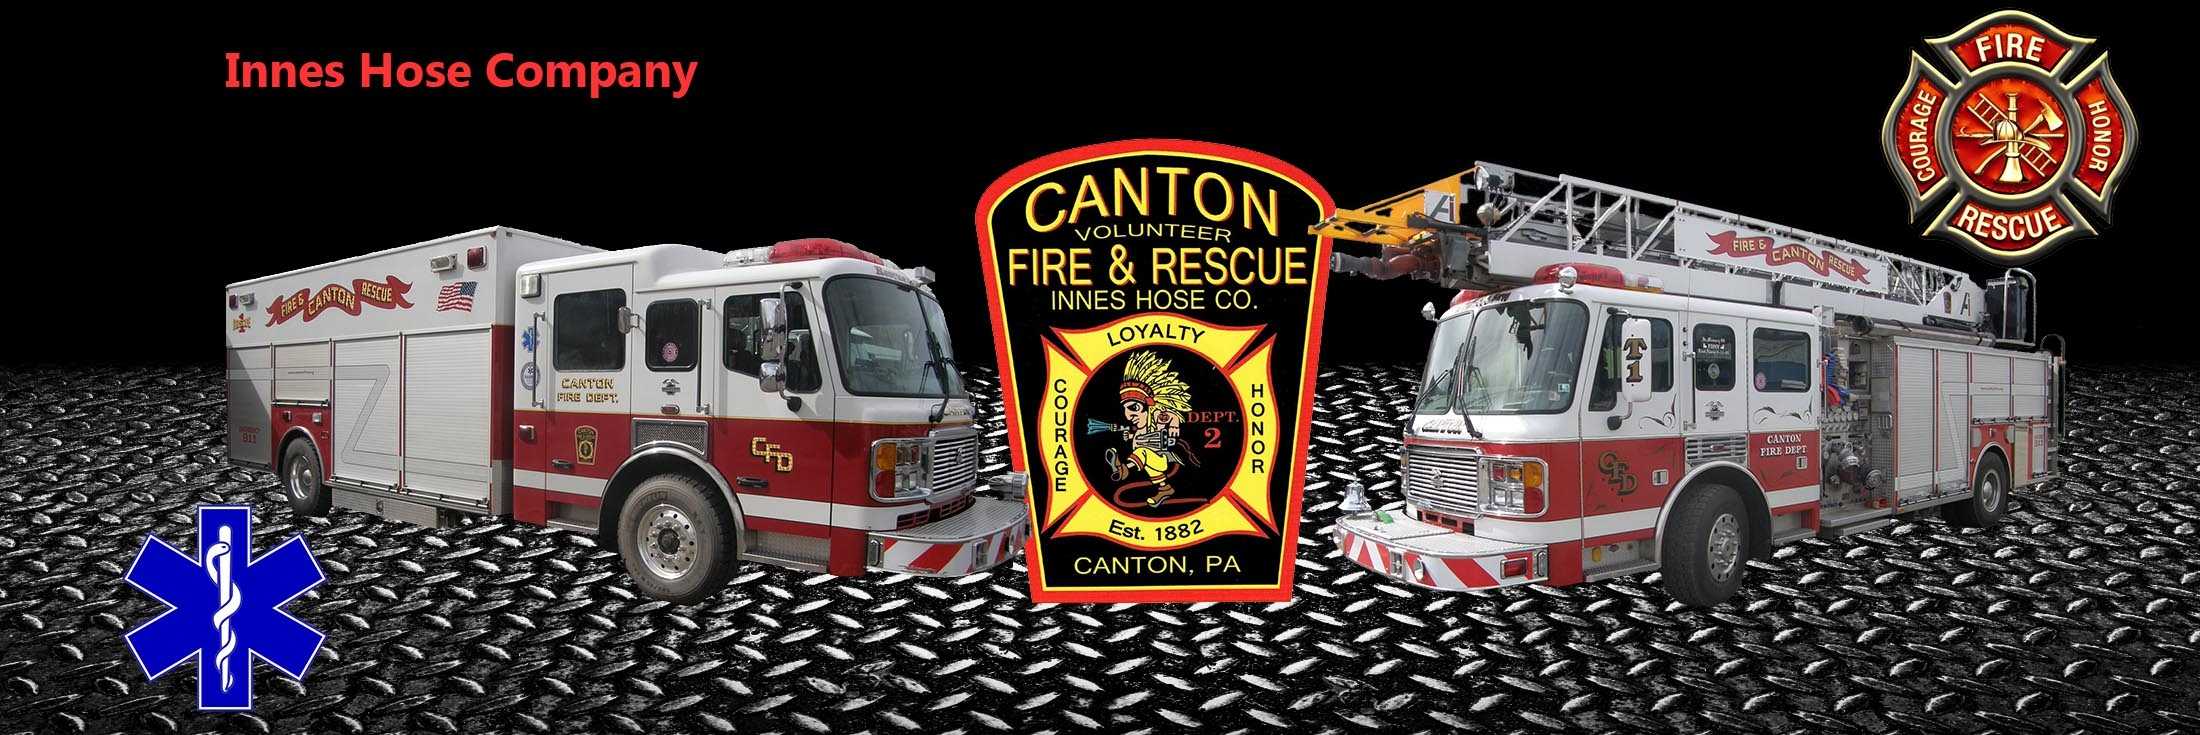 Canton Volunteer Fire Department / Innes Hose Company Inc. - Canton PA